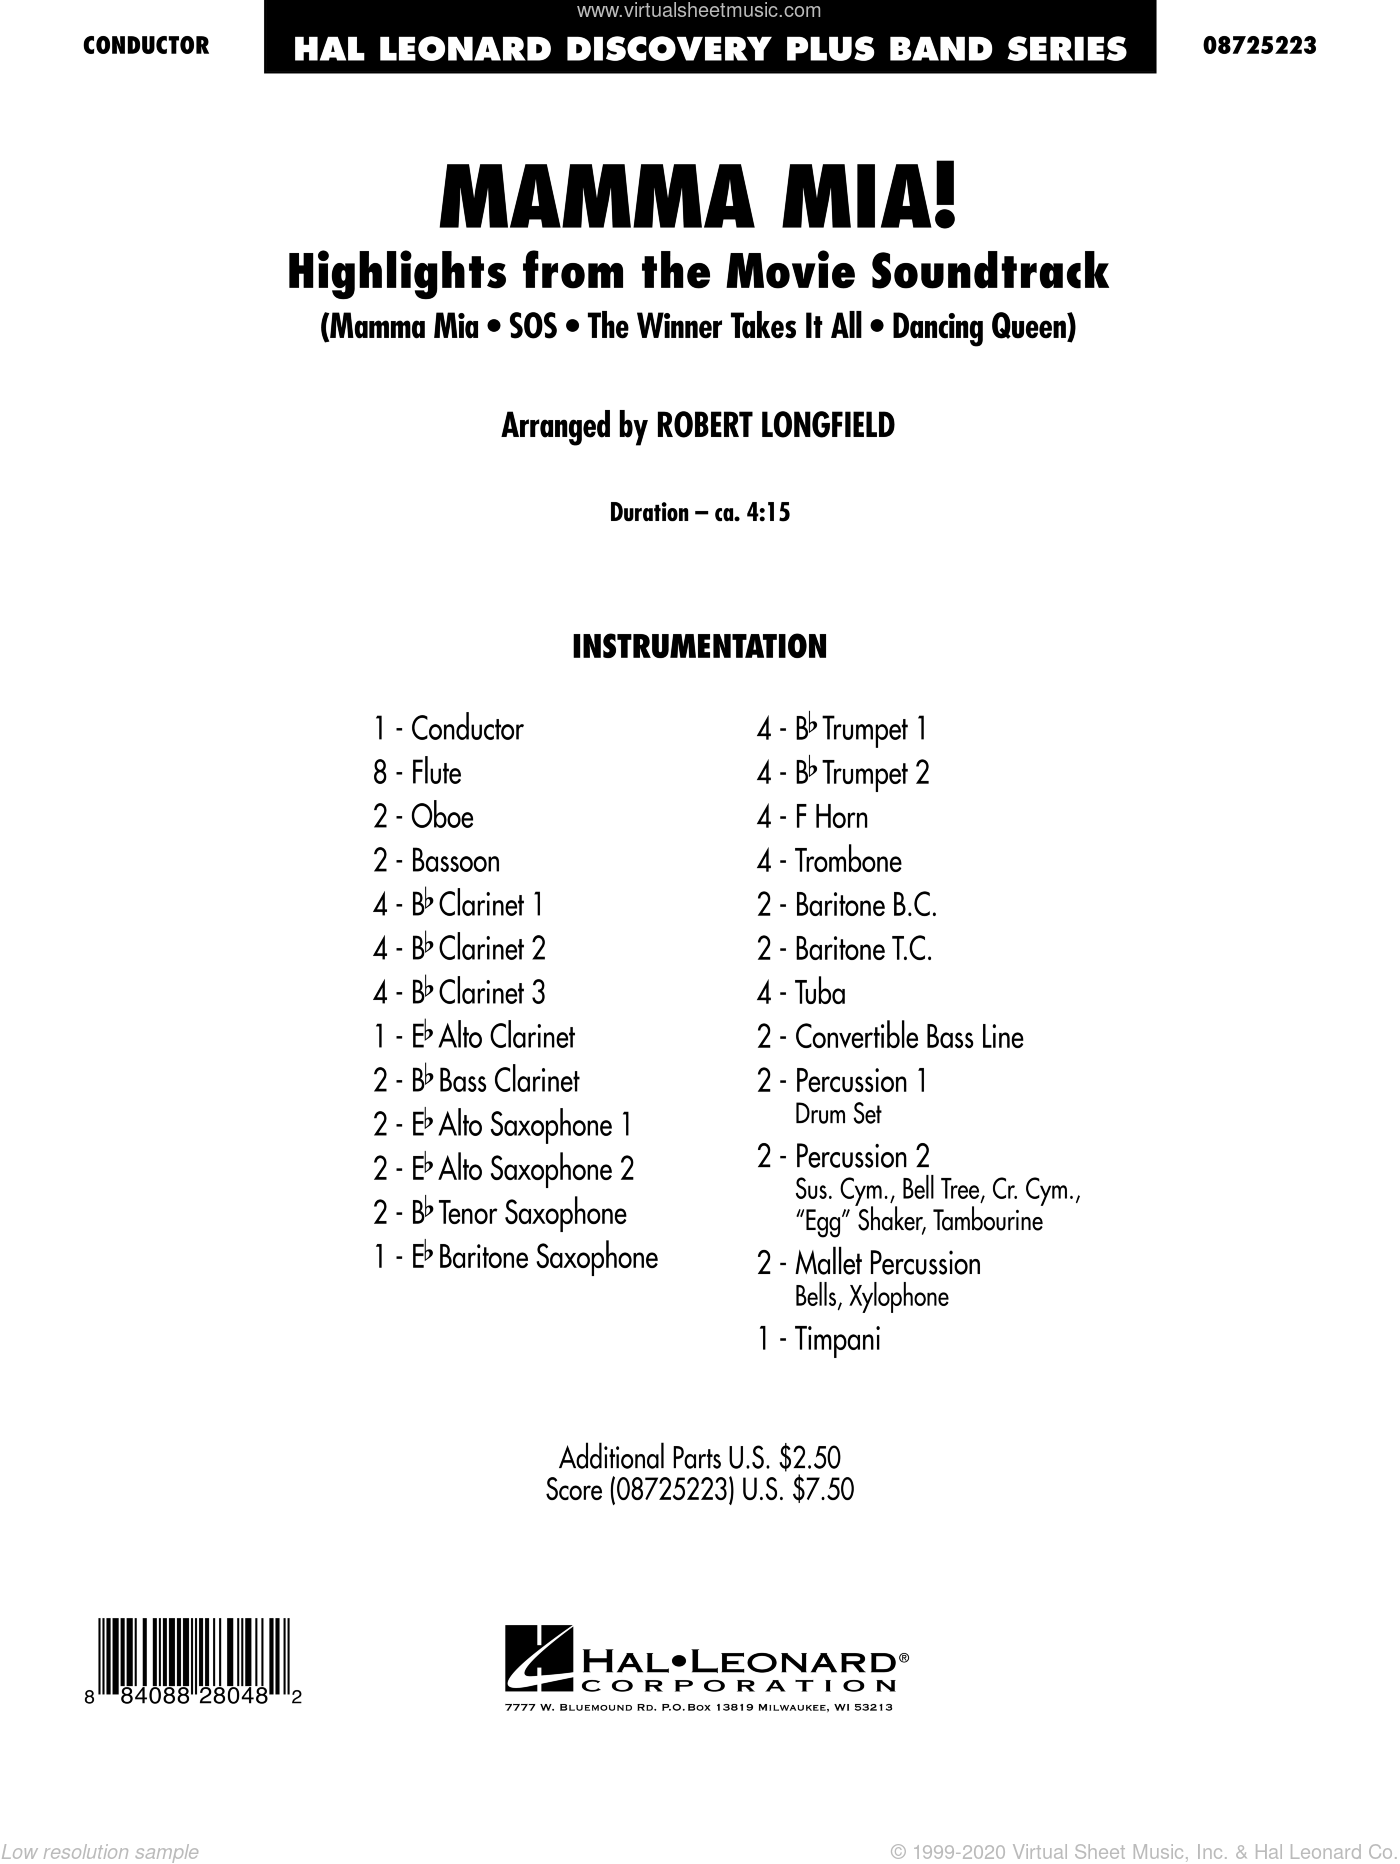 Mamma Mia!, highlights from the movie soundtrack sheet music for concert band (full score) by Robert Longfield